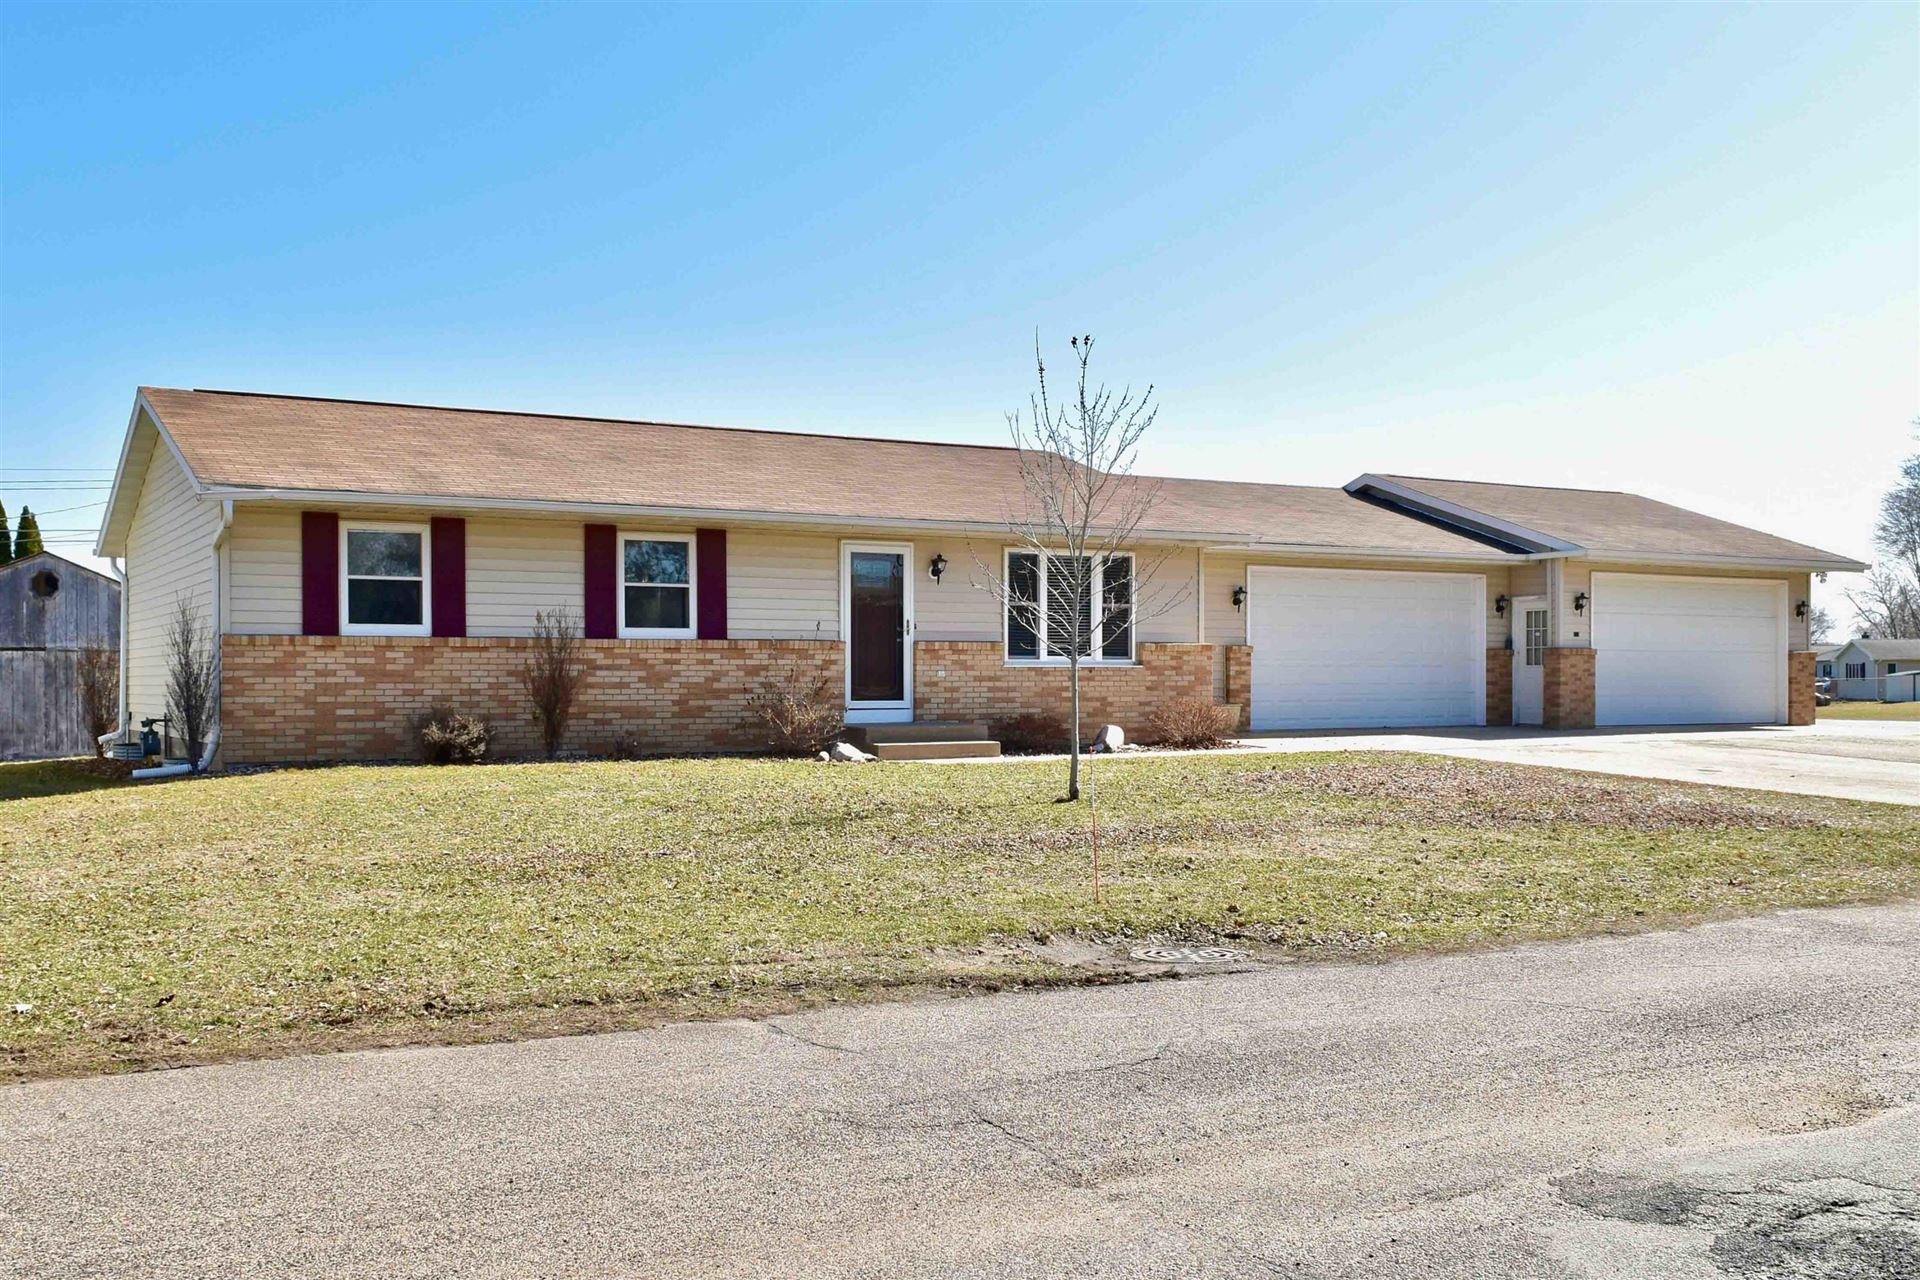 2602 Hibbard Ct, Campbell, WI 54603 - MLS#: 1727425